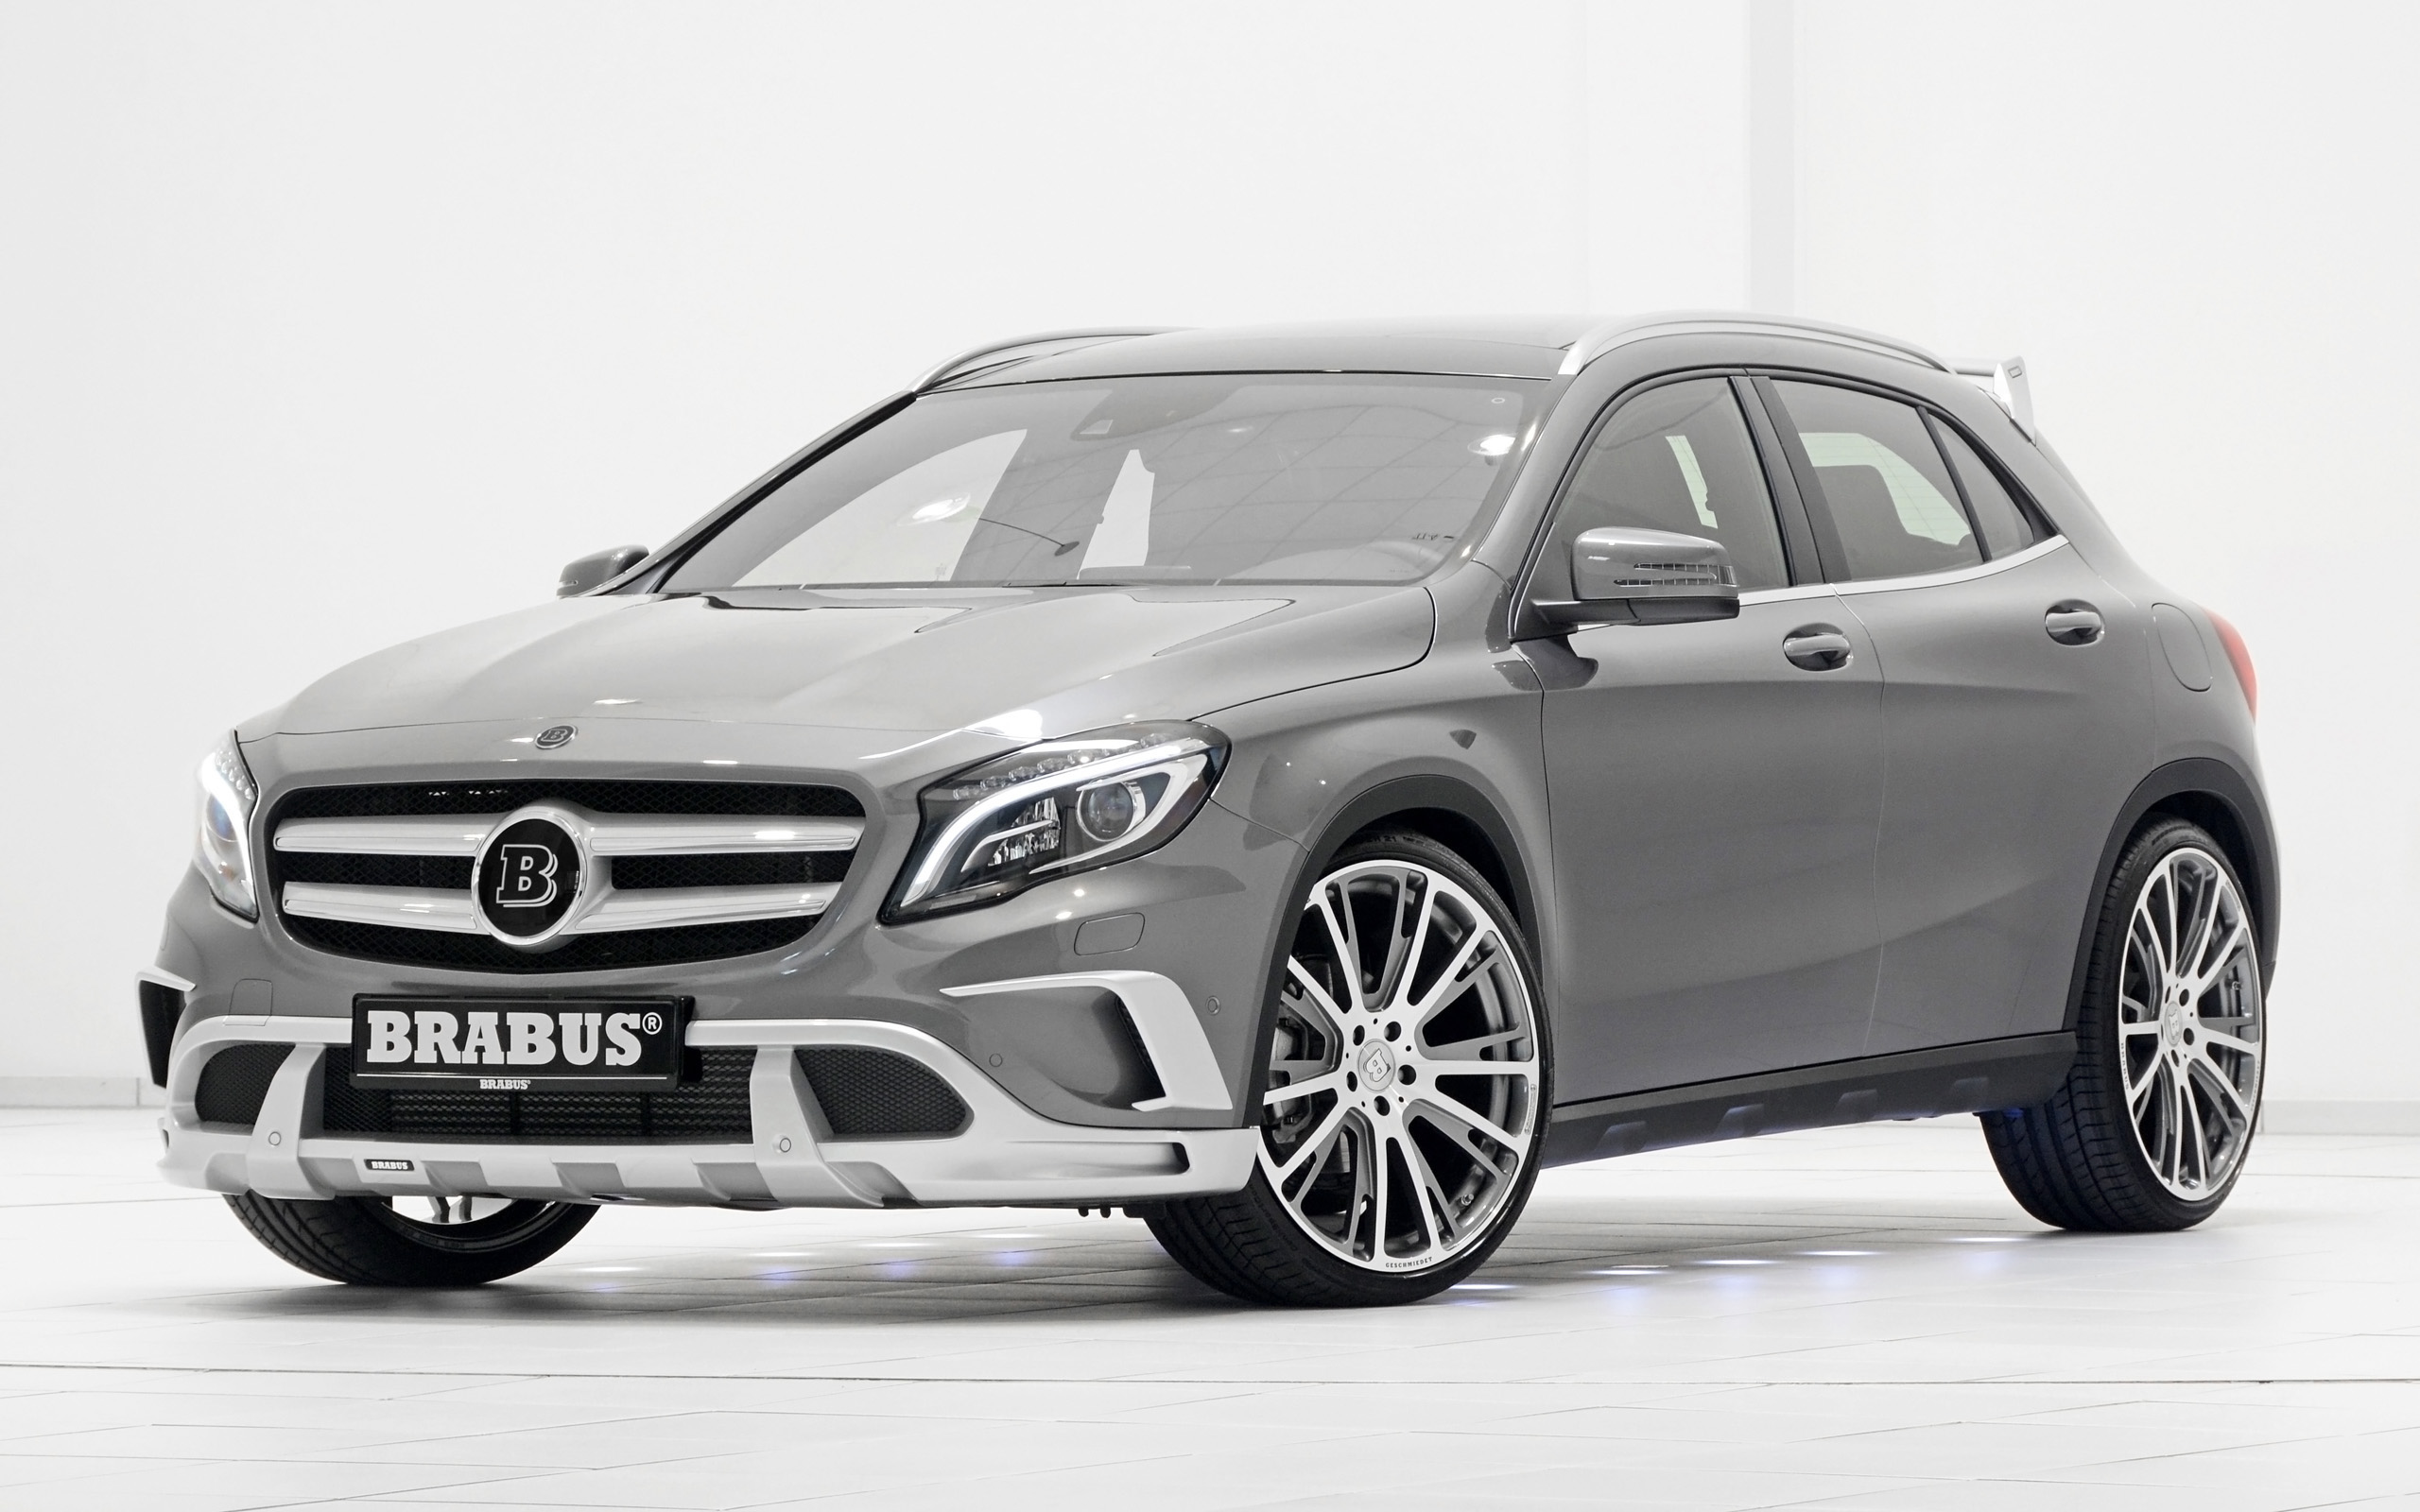 2014 brabus mercedes benz gla class wallpaper hd car